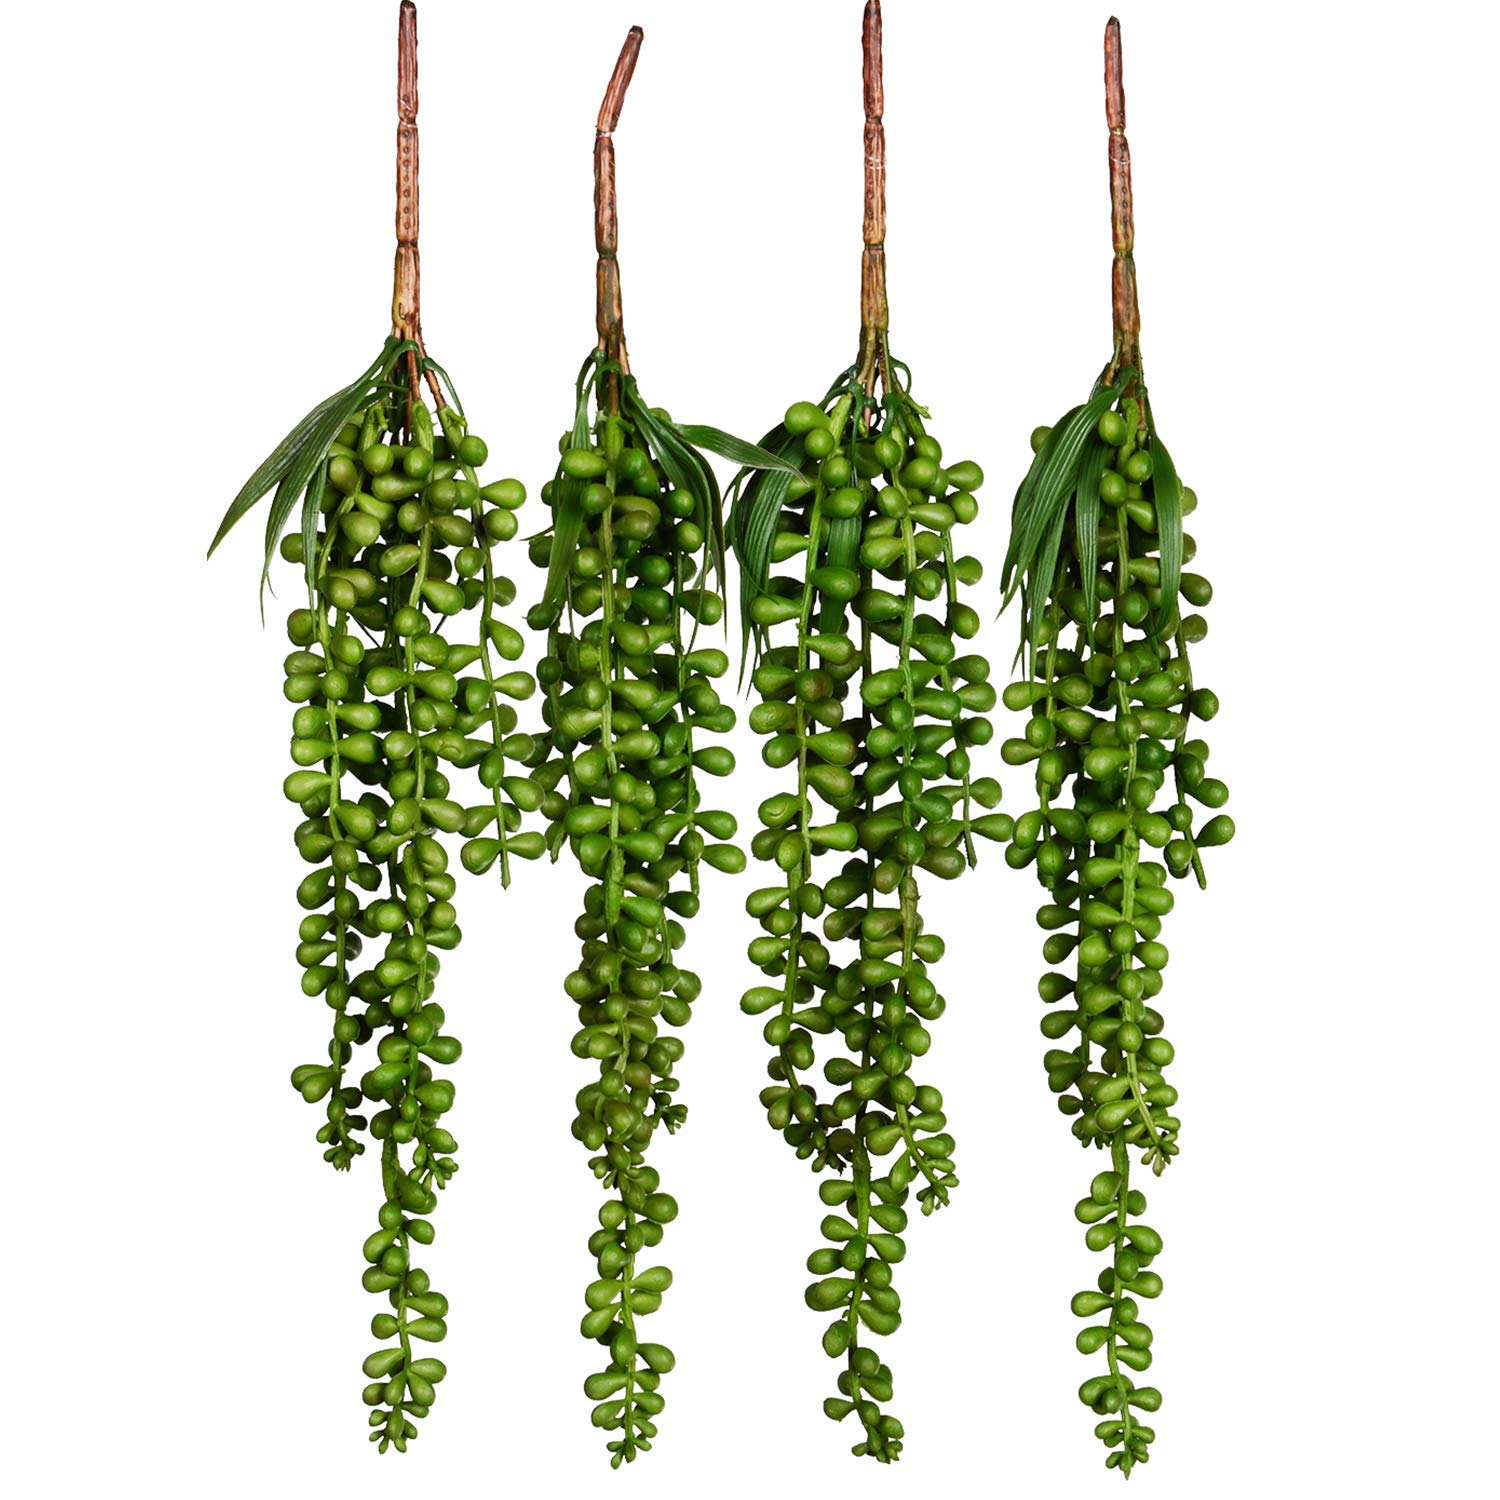 4pcs Artificial Hanging Plants Fake Succulents-GreenDec String of Pearls Fake Hanging Basketplant Lover's Tears Succulent Branch for Home Kitchen Office Garden Wedding Decor by Artiflr